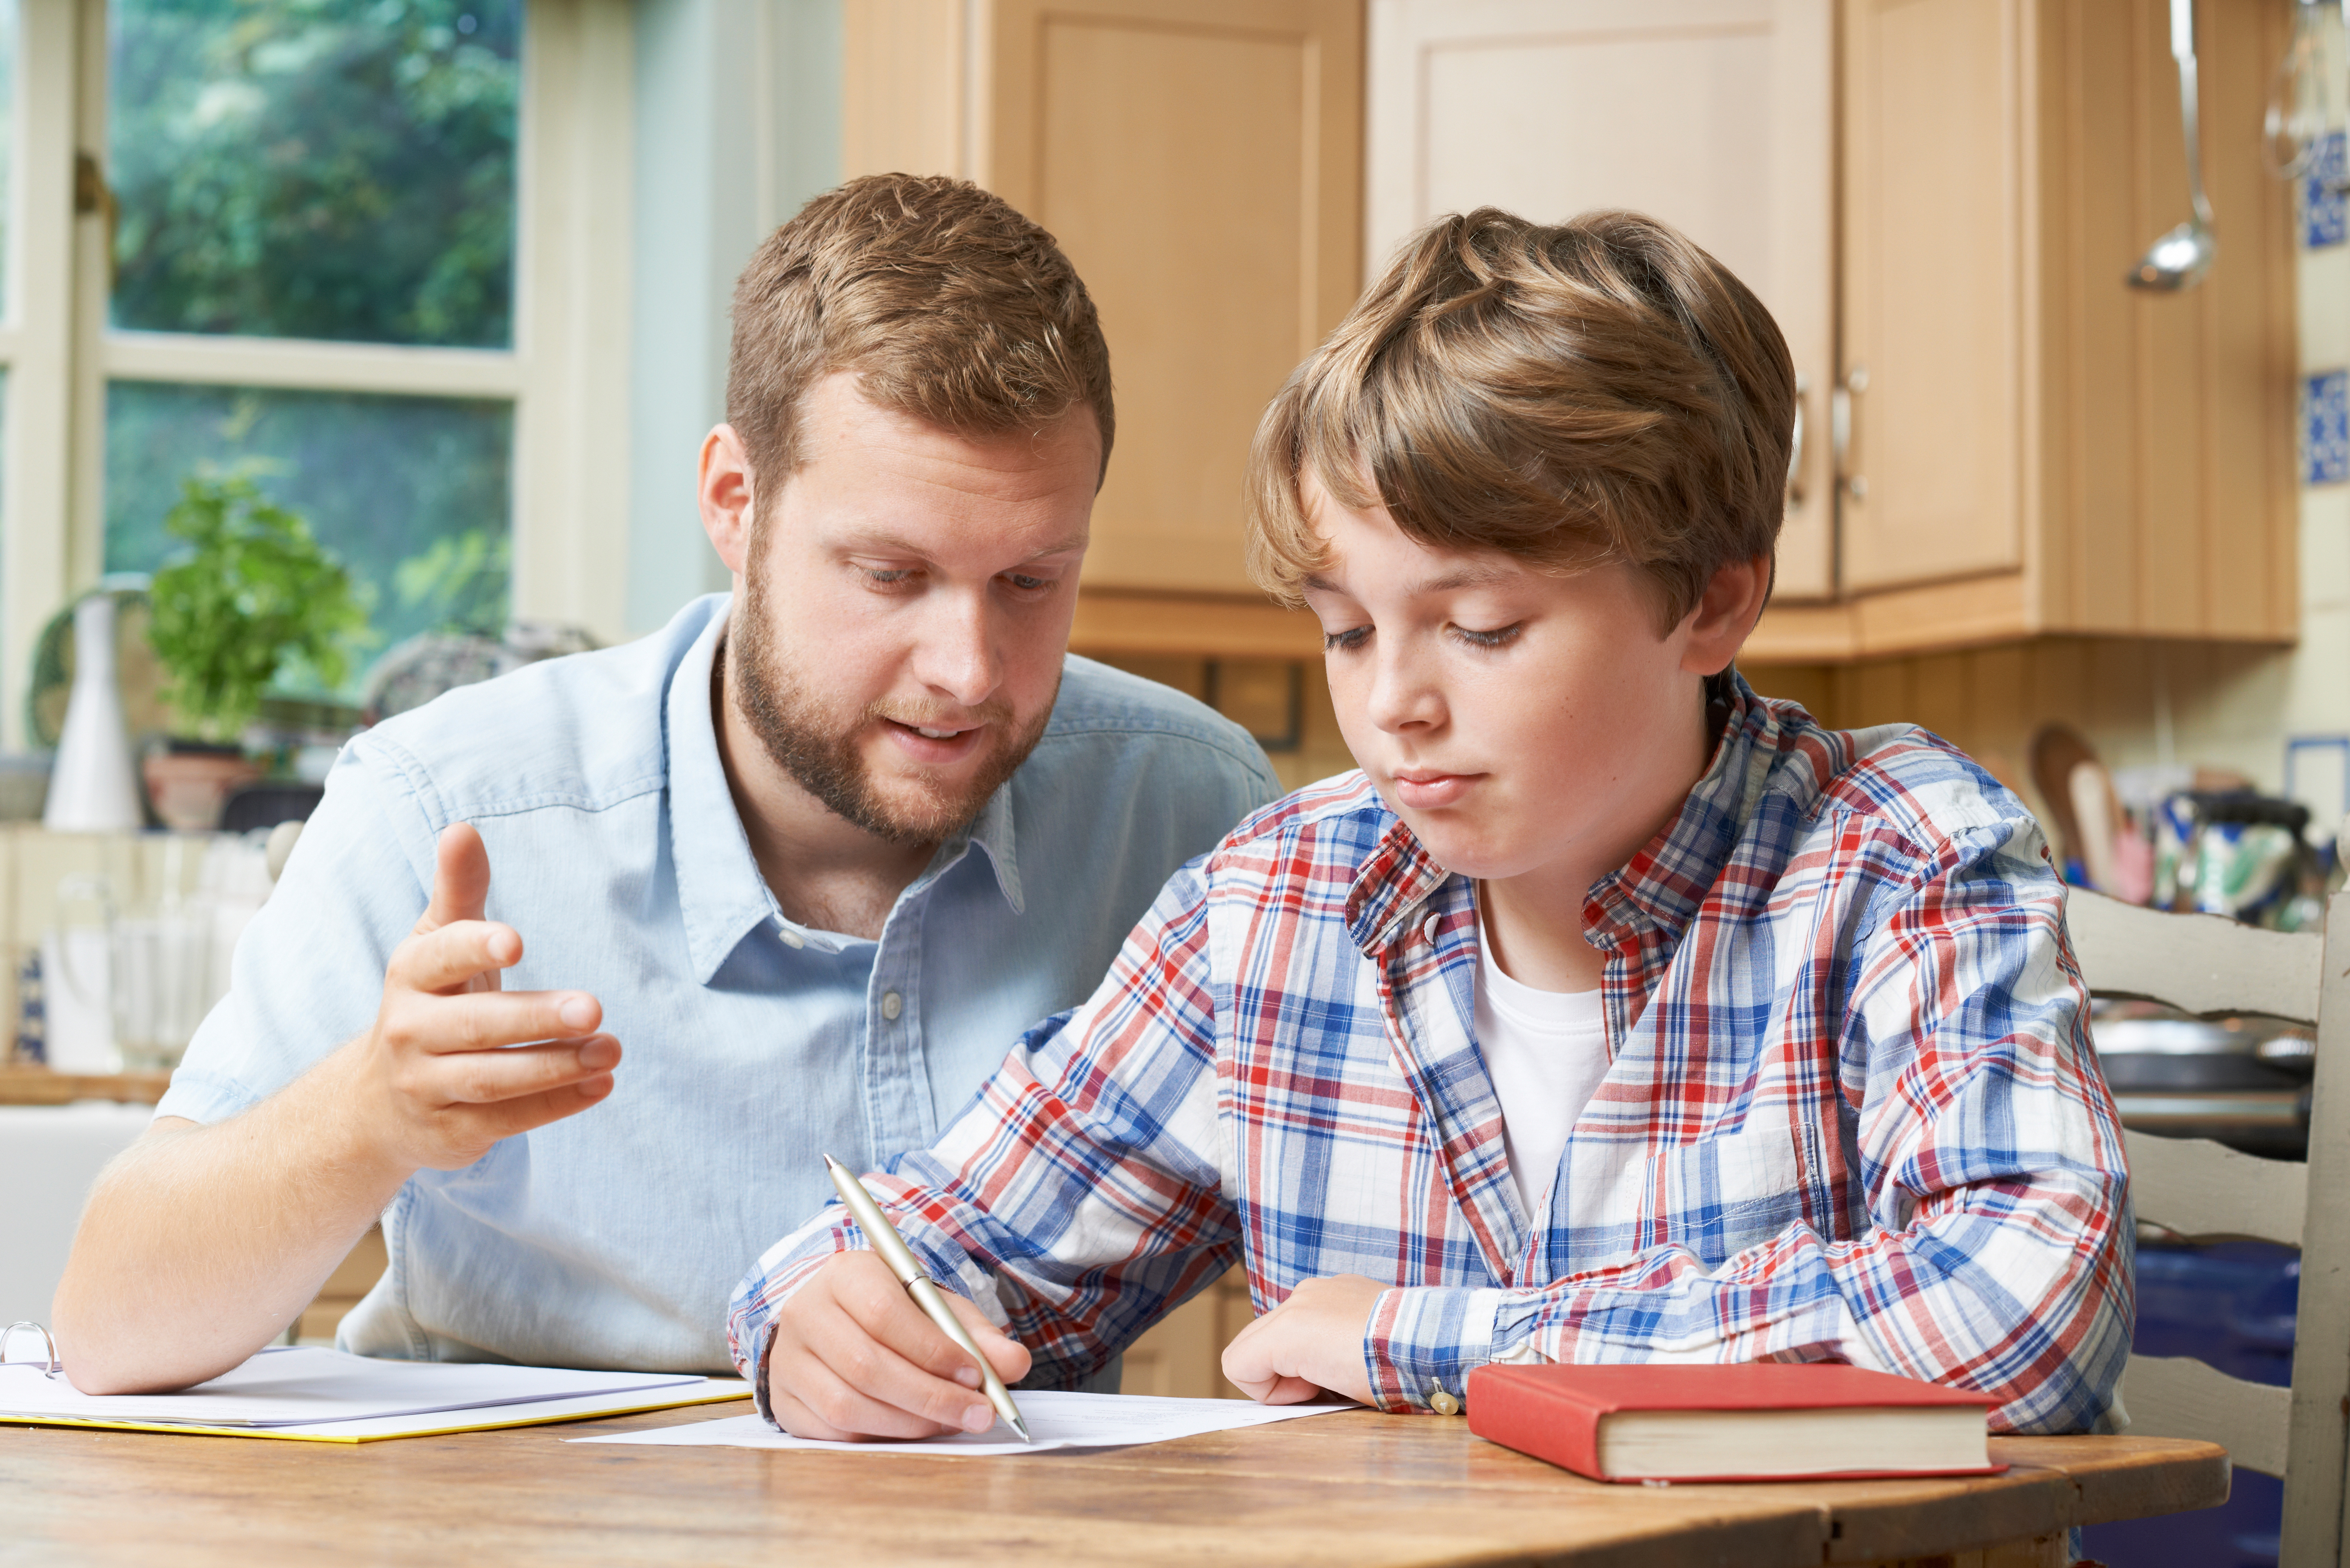 Dad teaching son with dyslexia